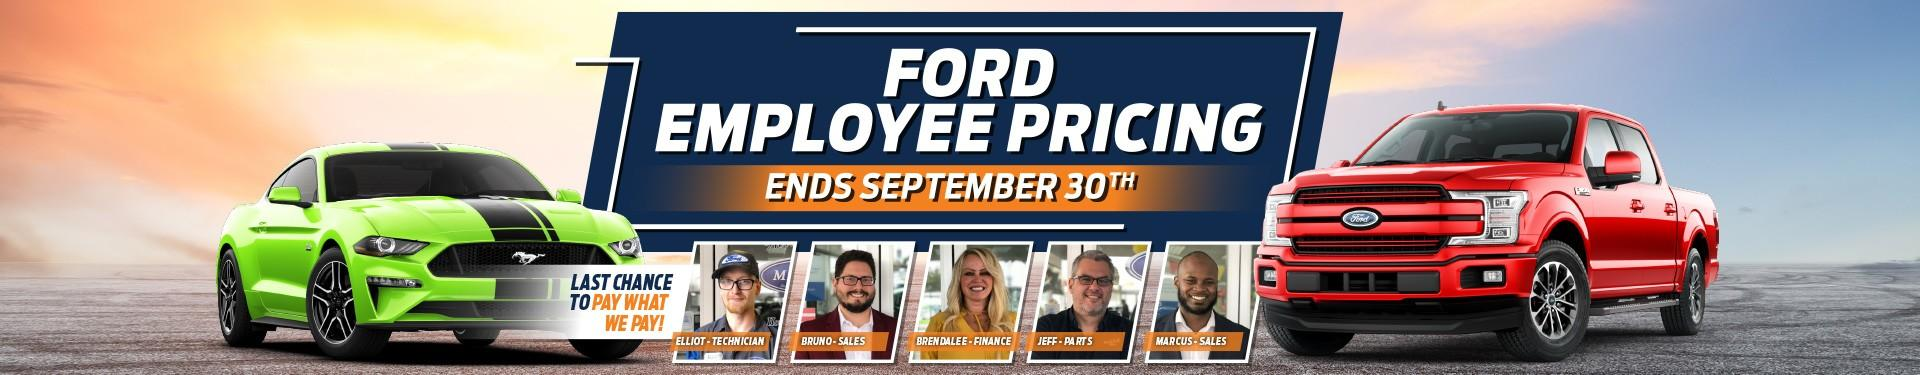 Maclin Ford Employee Pricing